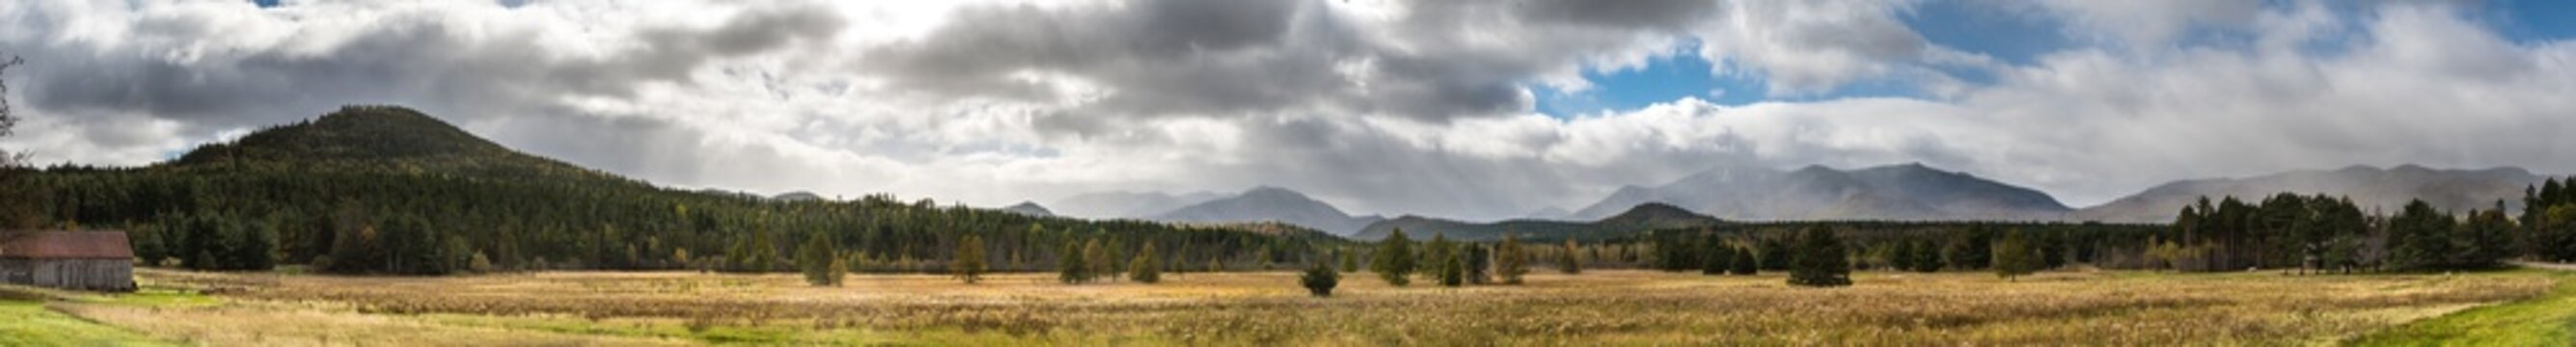 Panoramic view of a late fall mountains scene with spectacular sky near Lake Placid NY